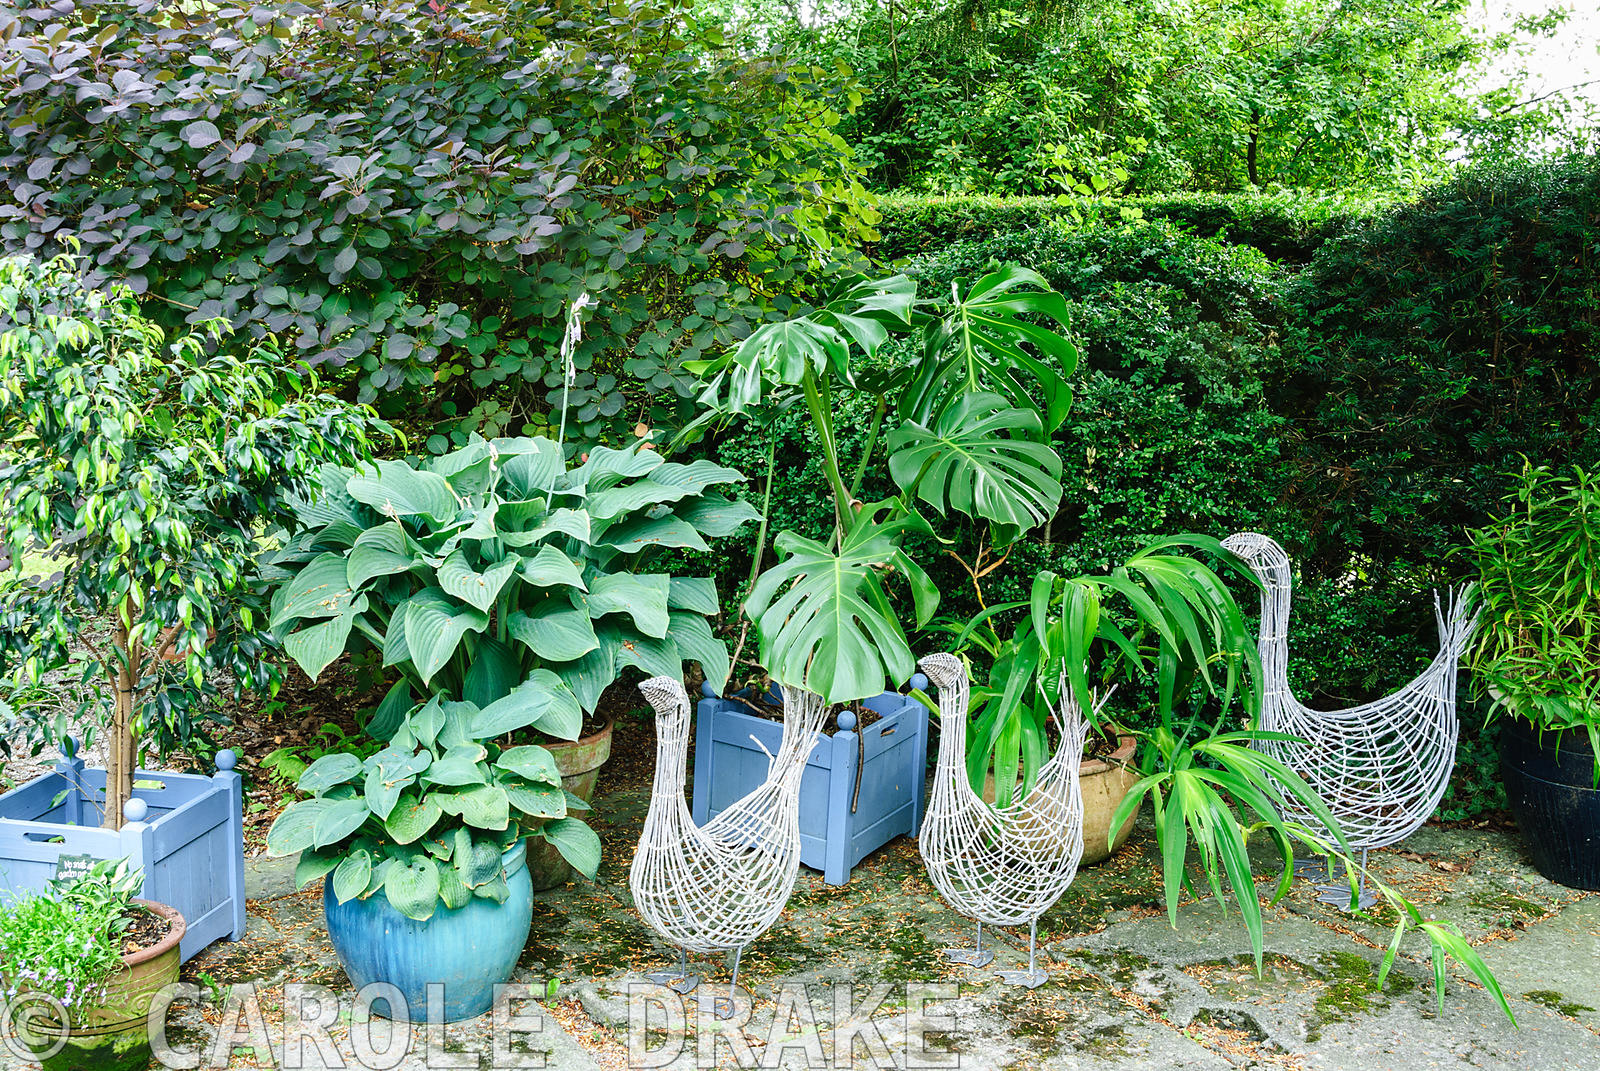 Decorative wire birds amongst pots of foliage plants including hostas, cheese plant and ficus. Beggars Knoll, Newtown, Westbu...